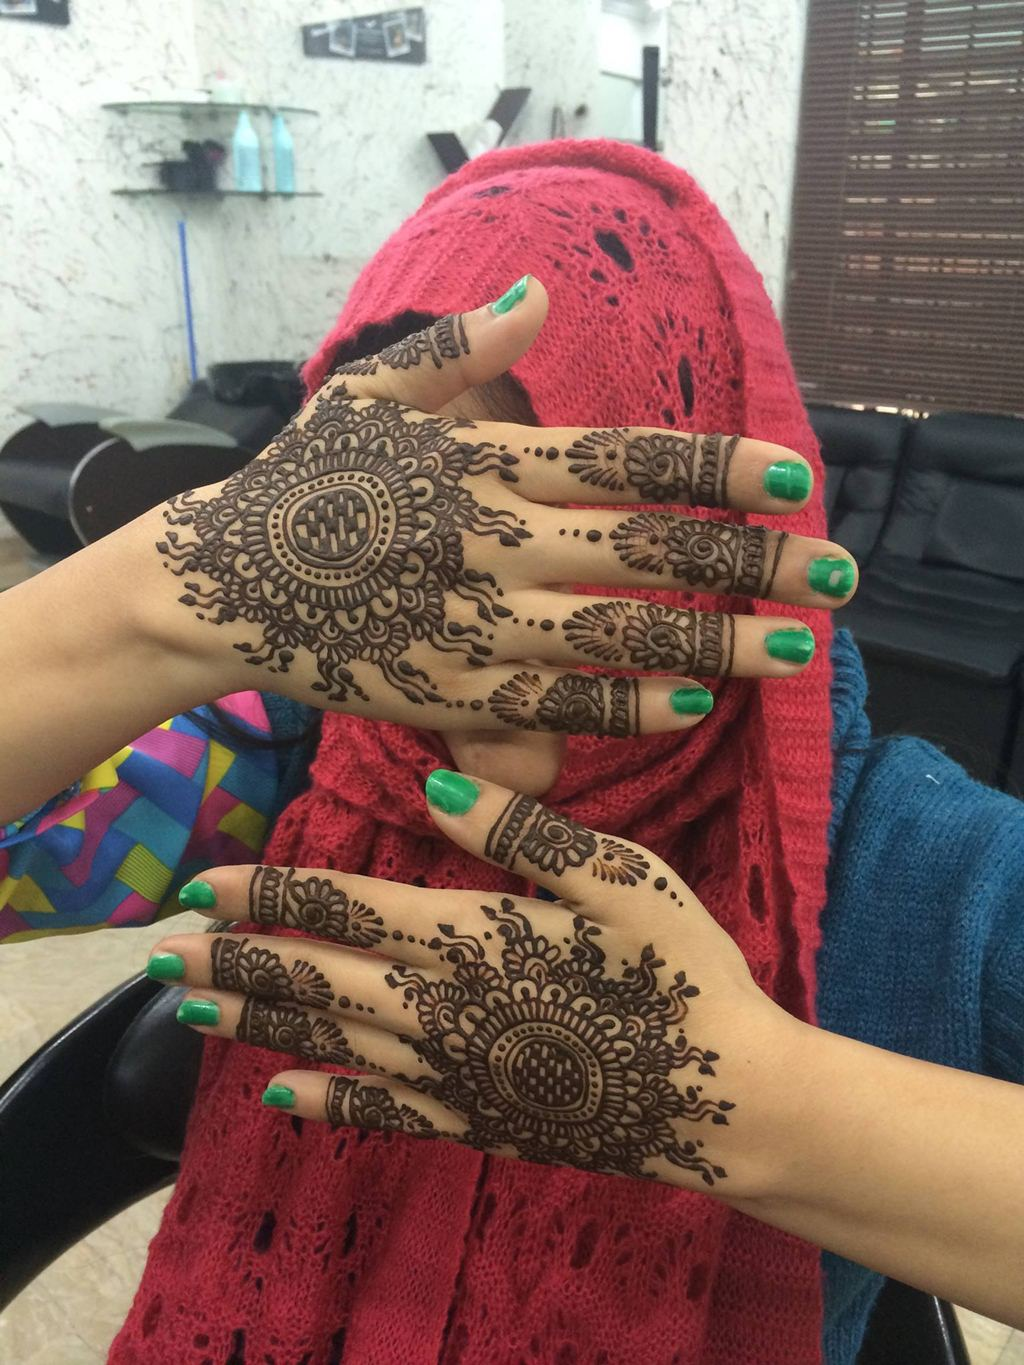 Inspirational Quotes And Wallpapers Bridal Mehndi Day Henna Designs For Girls Xcitefun Net